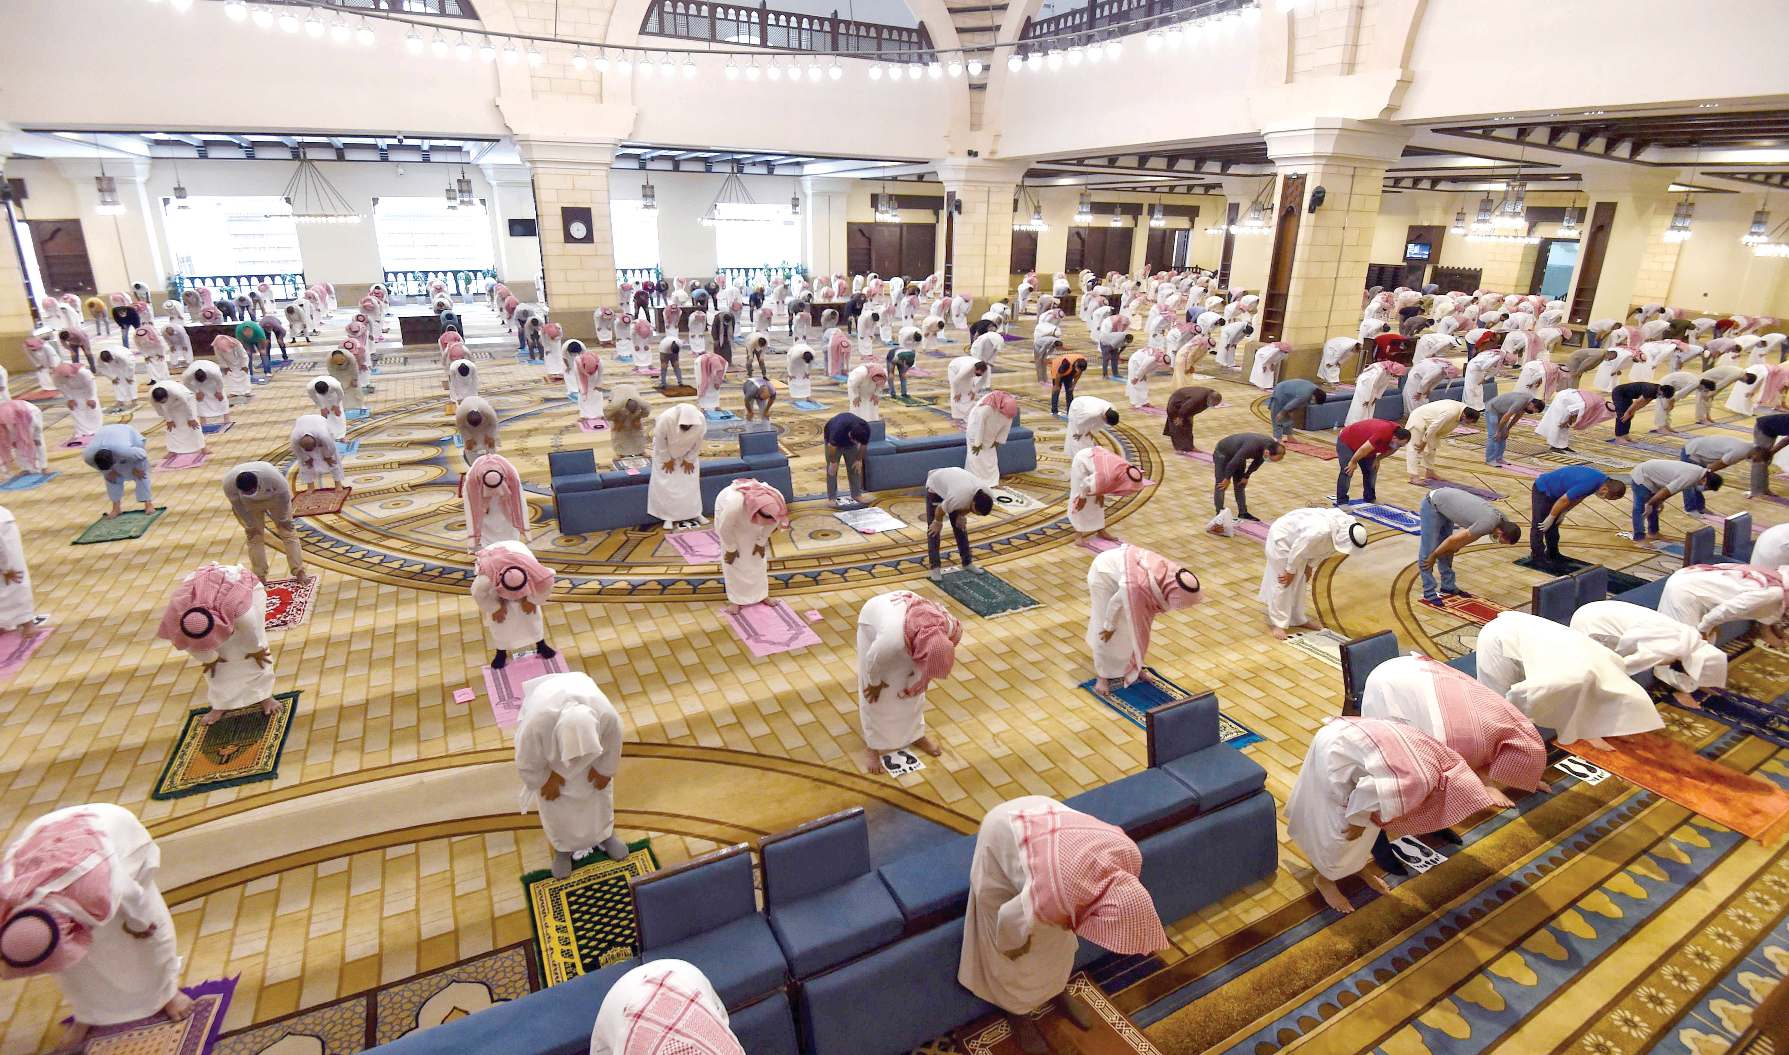 Faithful Flock To Mosques In Saudi As Lockdown Eases